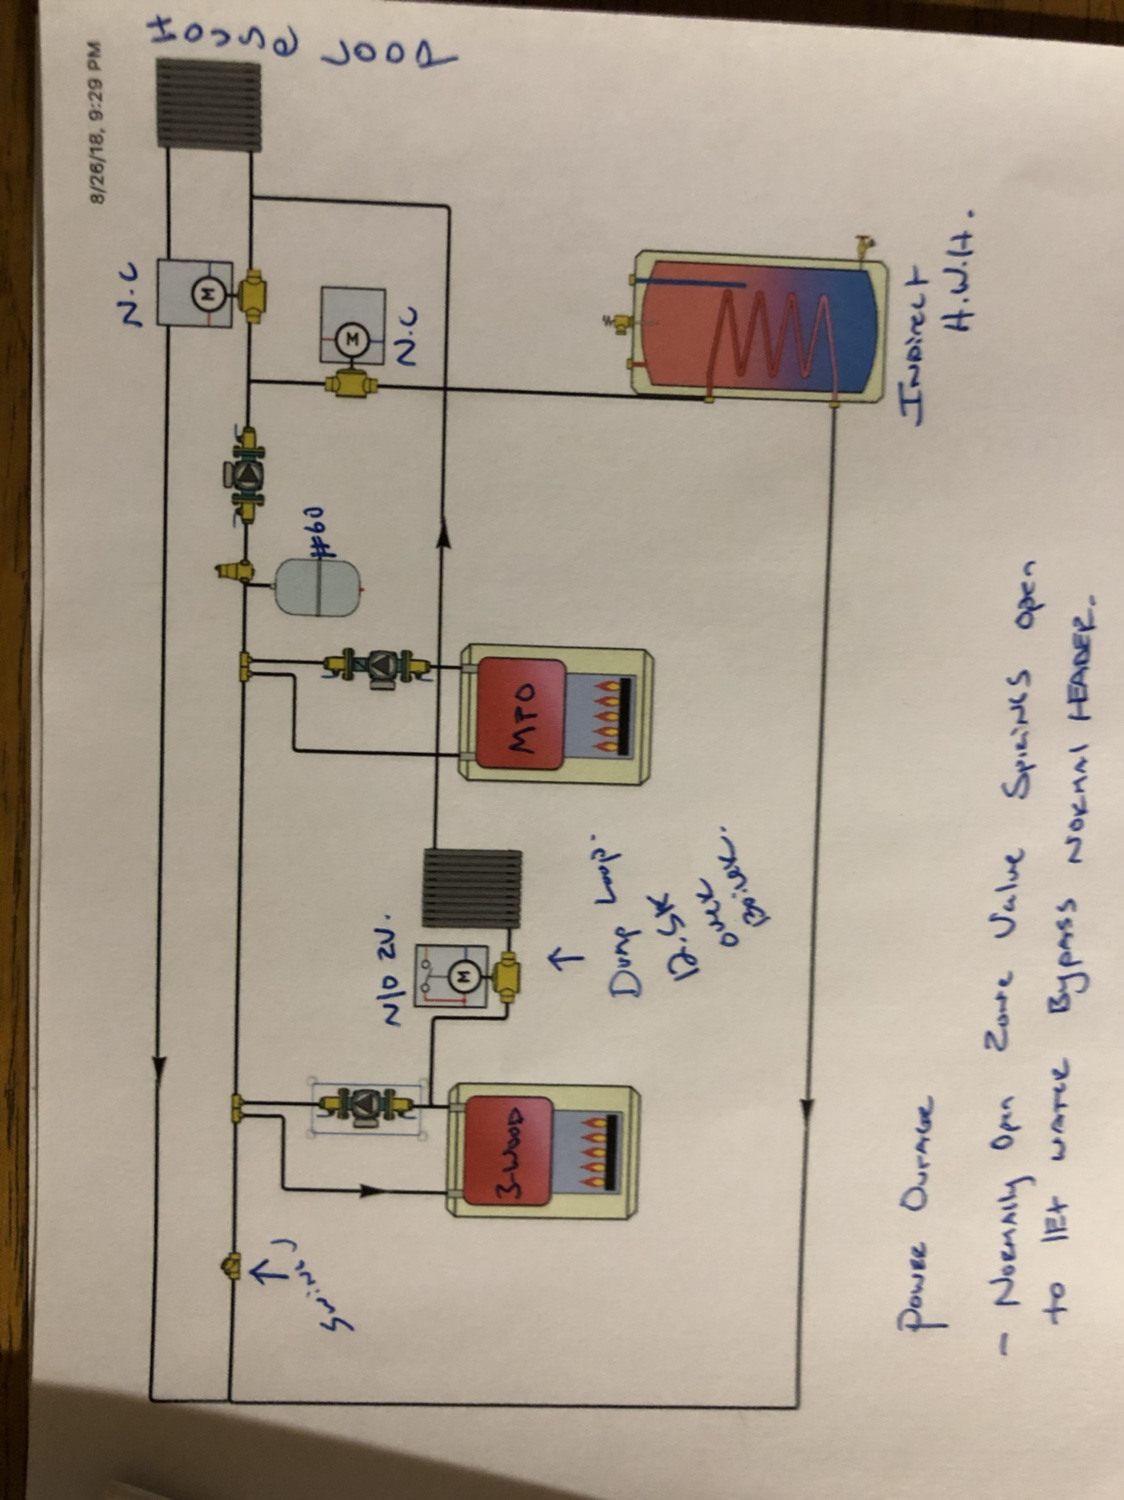 Wood Oil Boiler Piping Schematic What Is A Diagram Sent From My Iphone Using Tapatalk